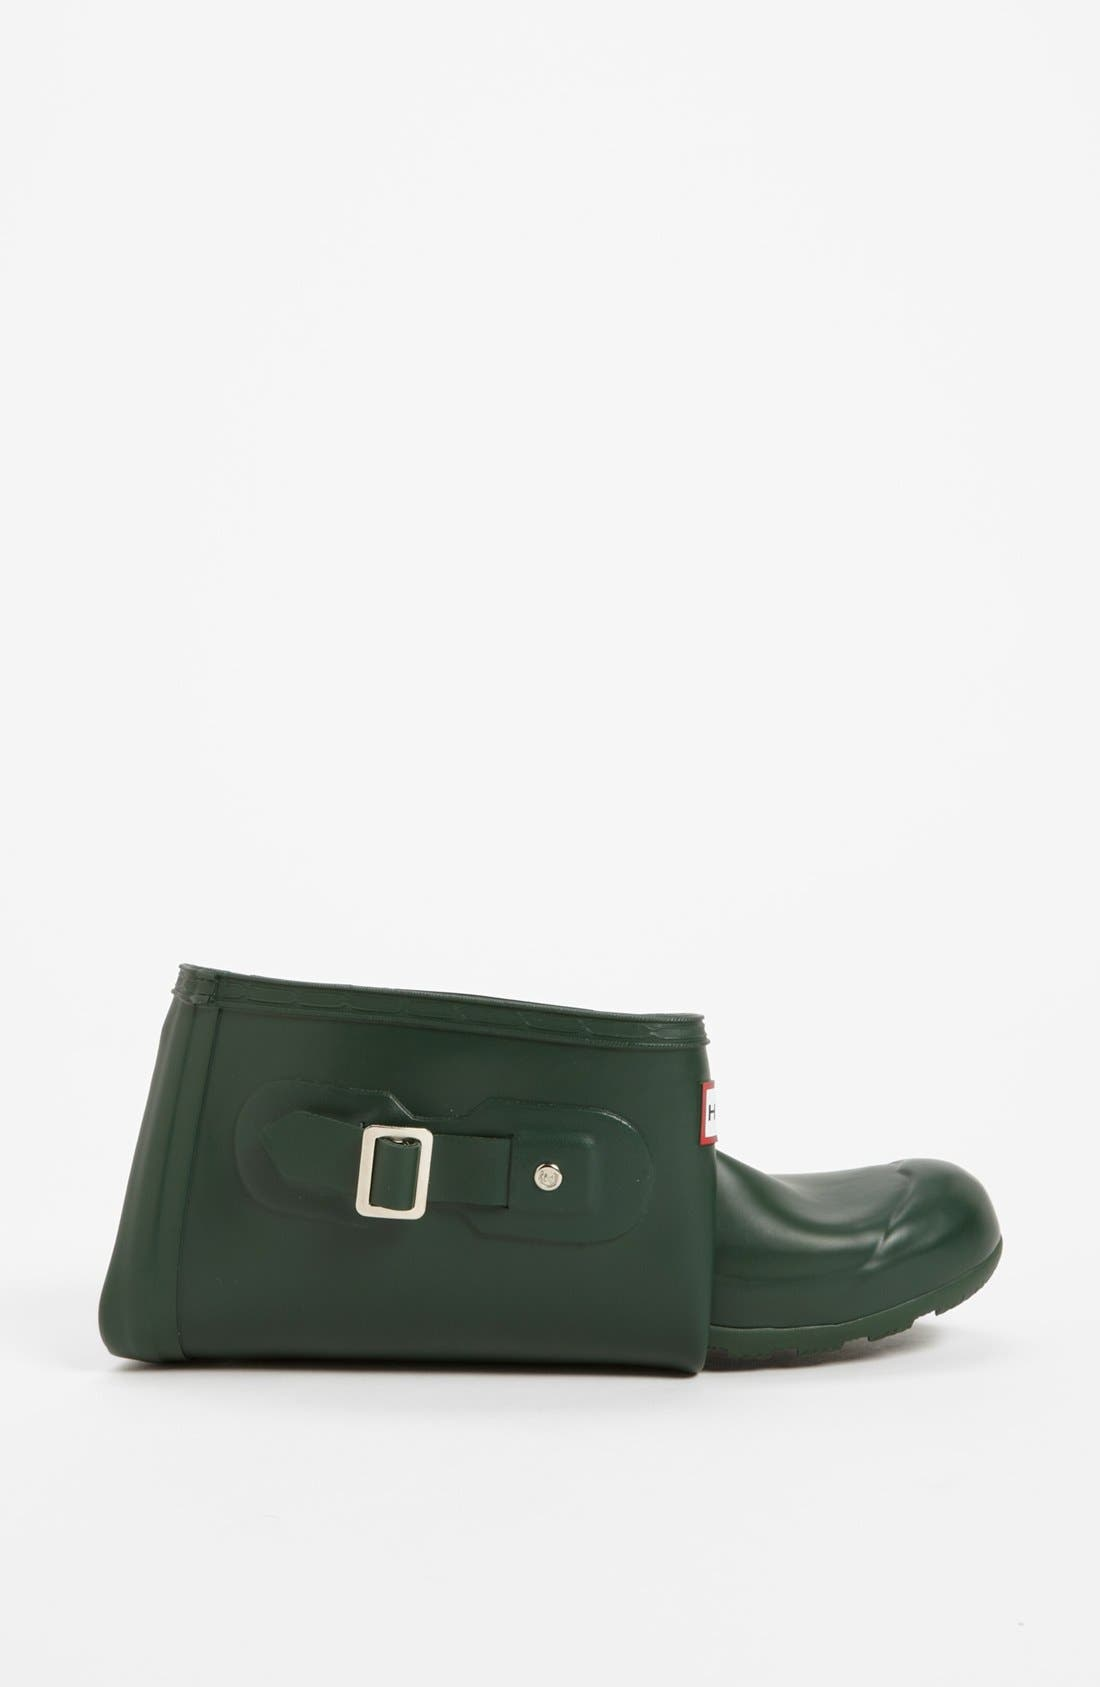 'Tour' Packable Rain Boot,                             Alternate thumbnail 34, color,